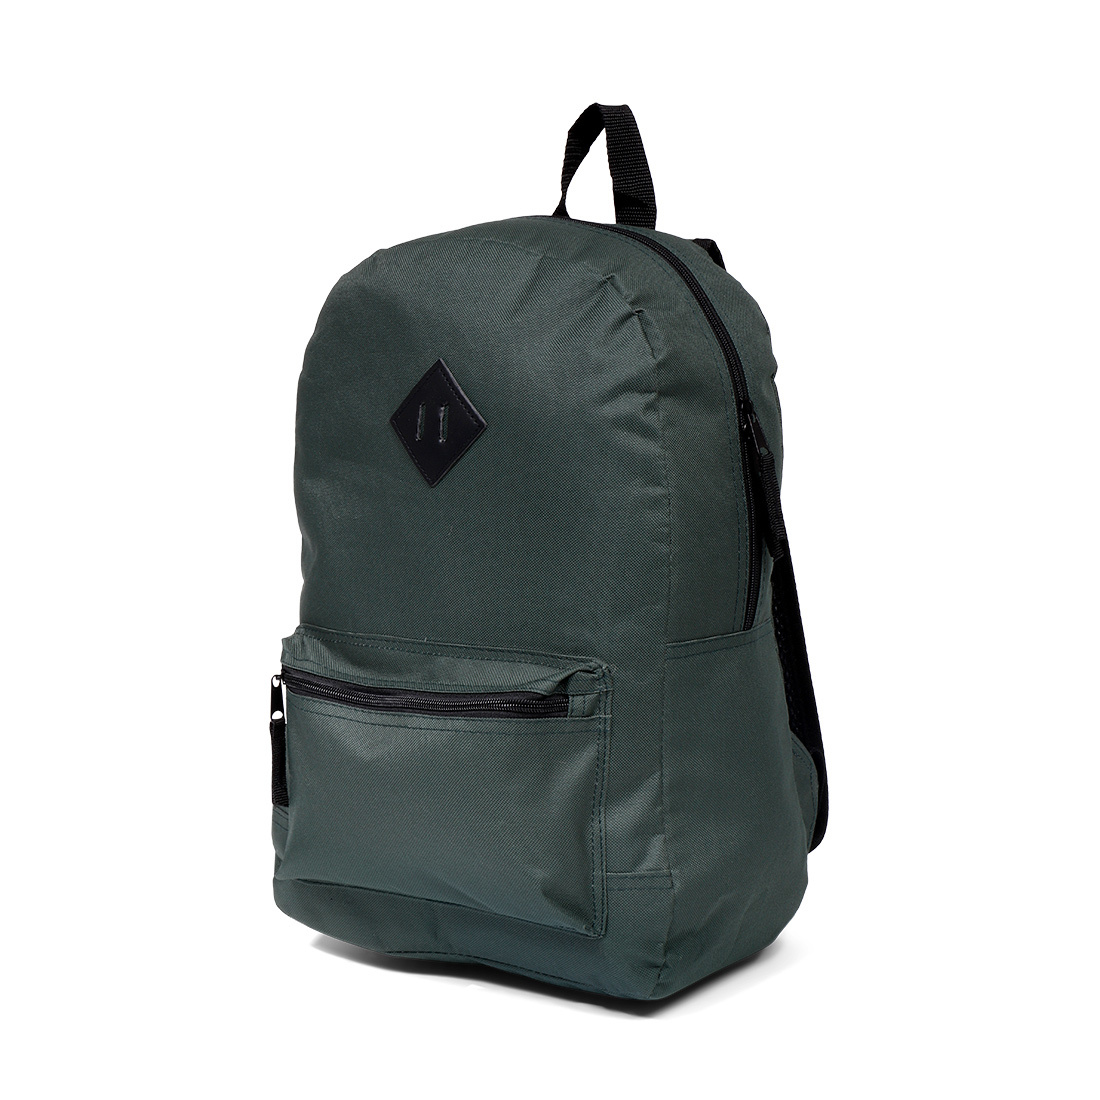 Urban Tourist Backpack RPET Green